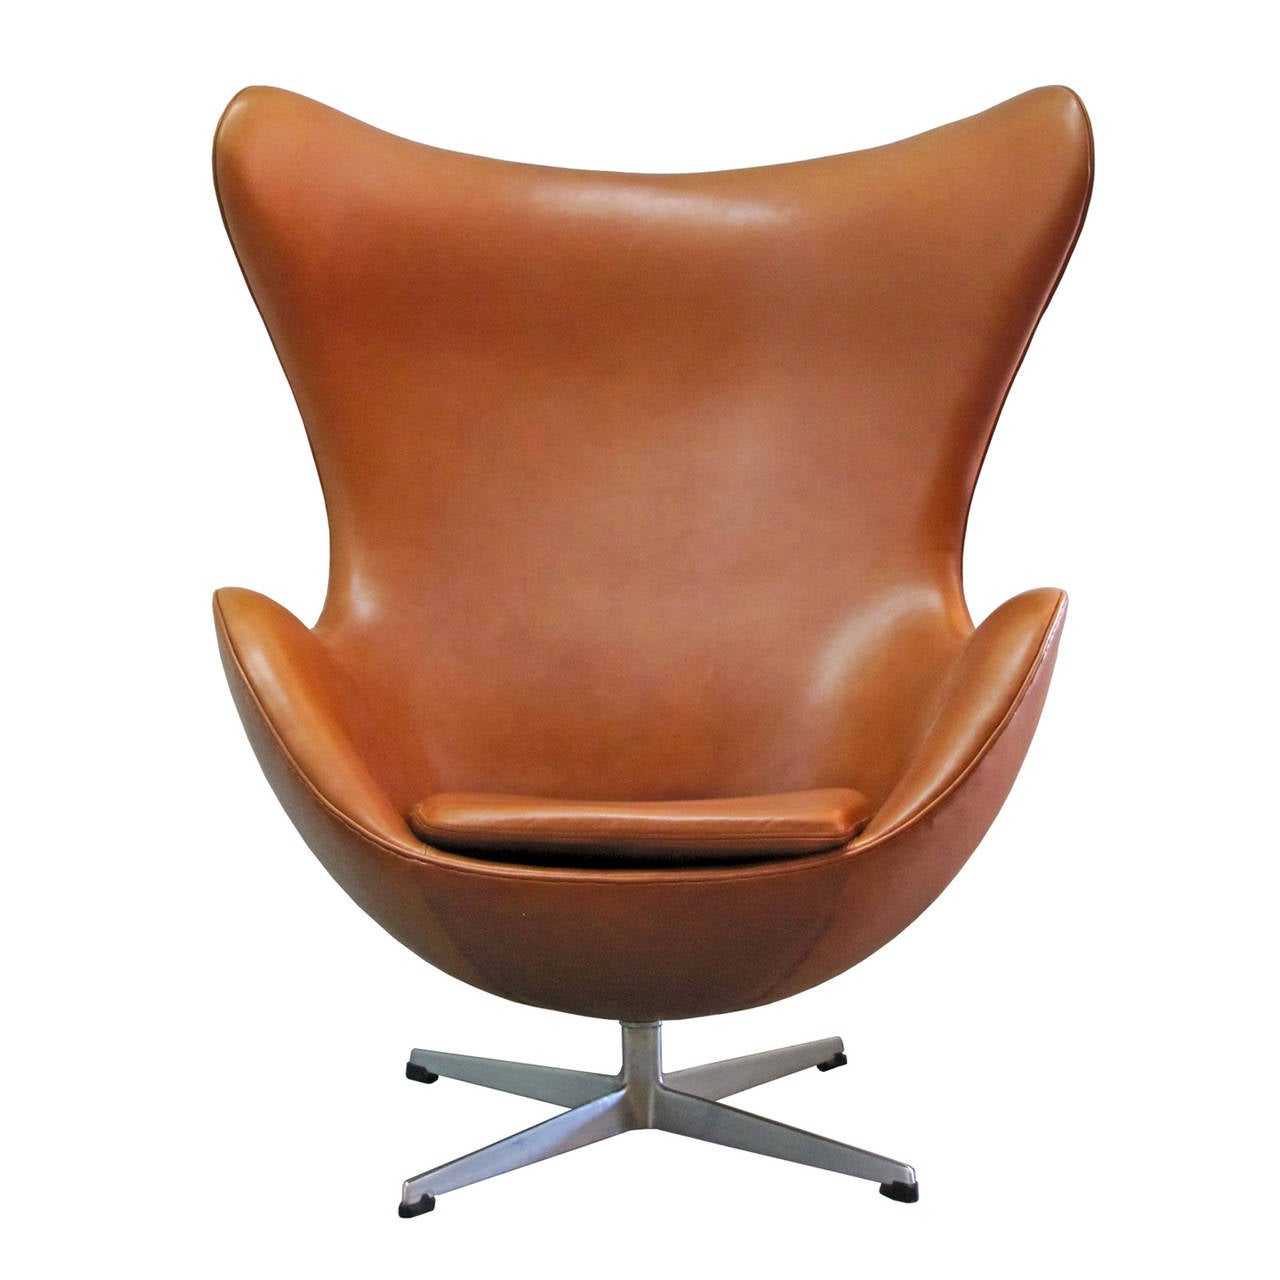 Arne Jacobsen Egg Chair at 1stdibs